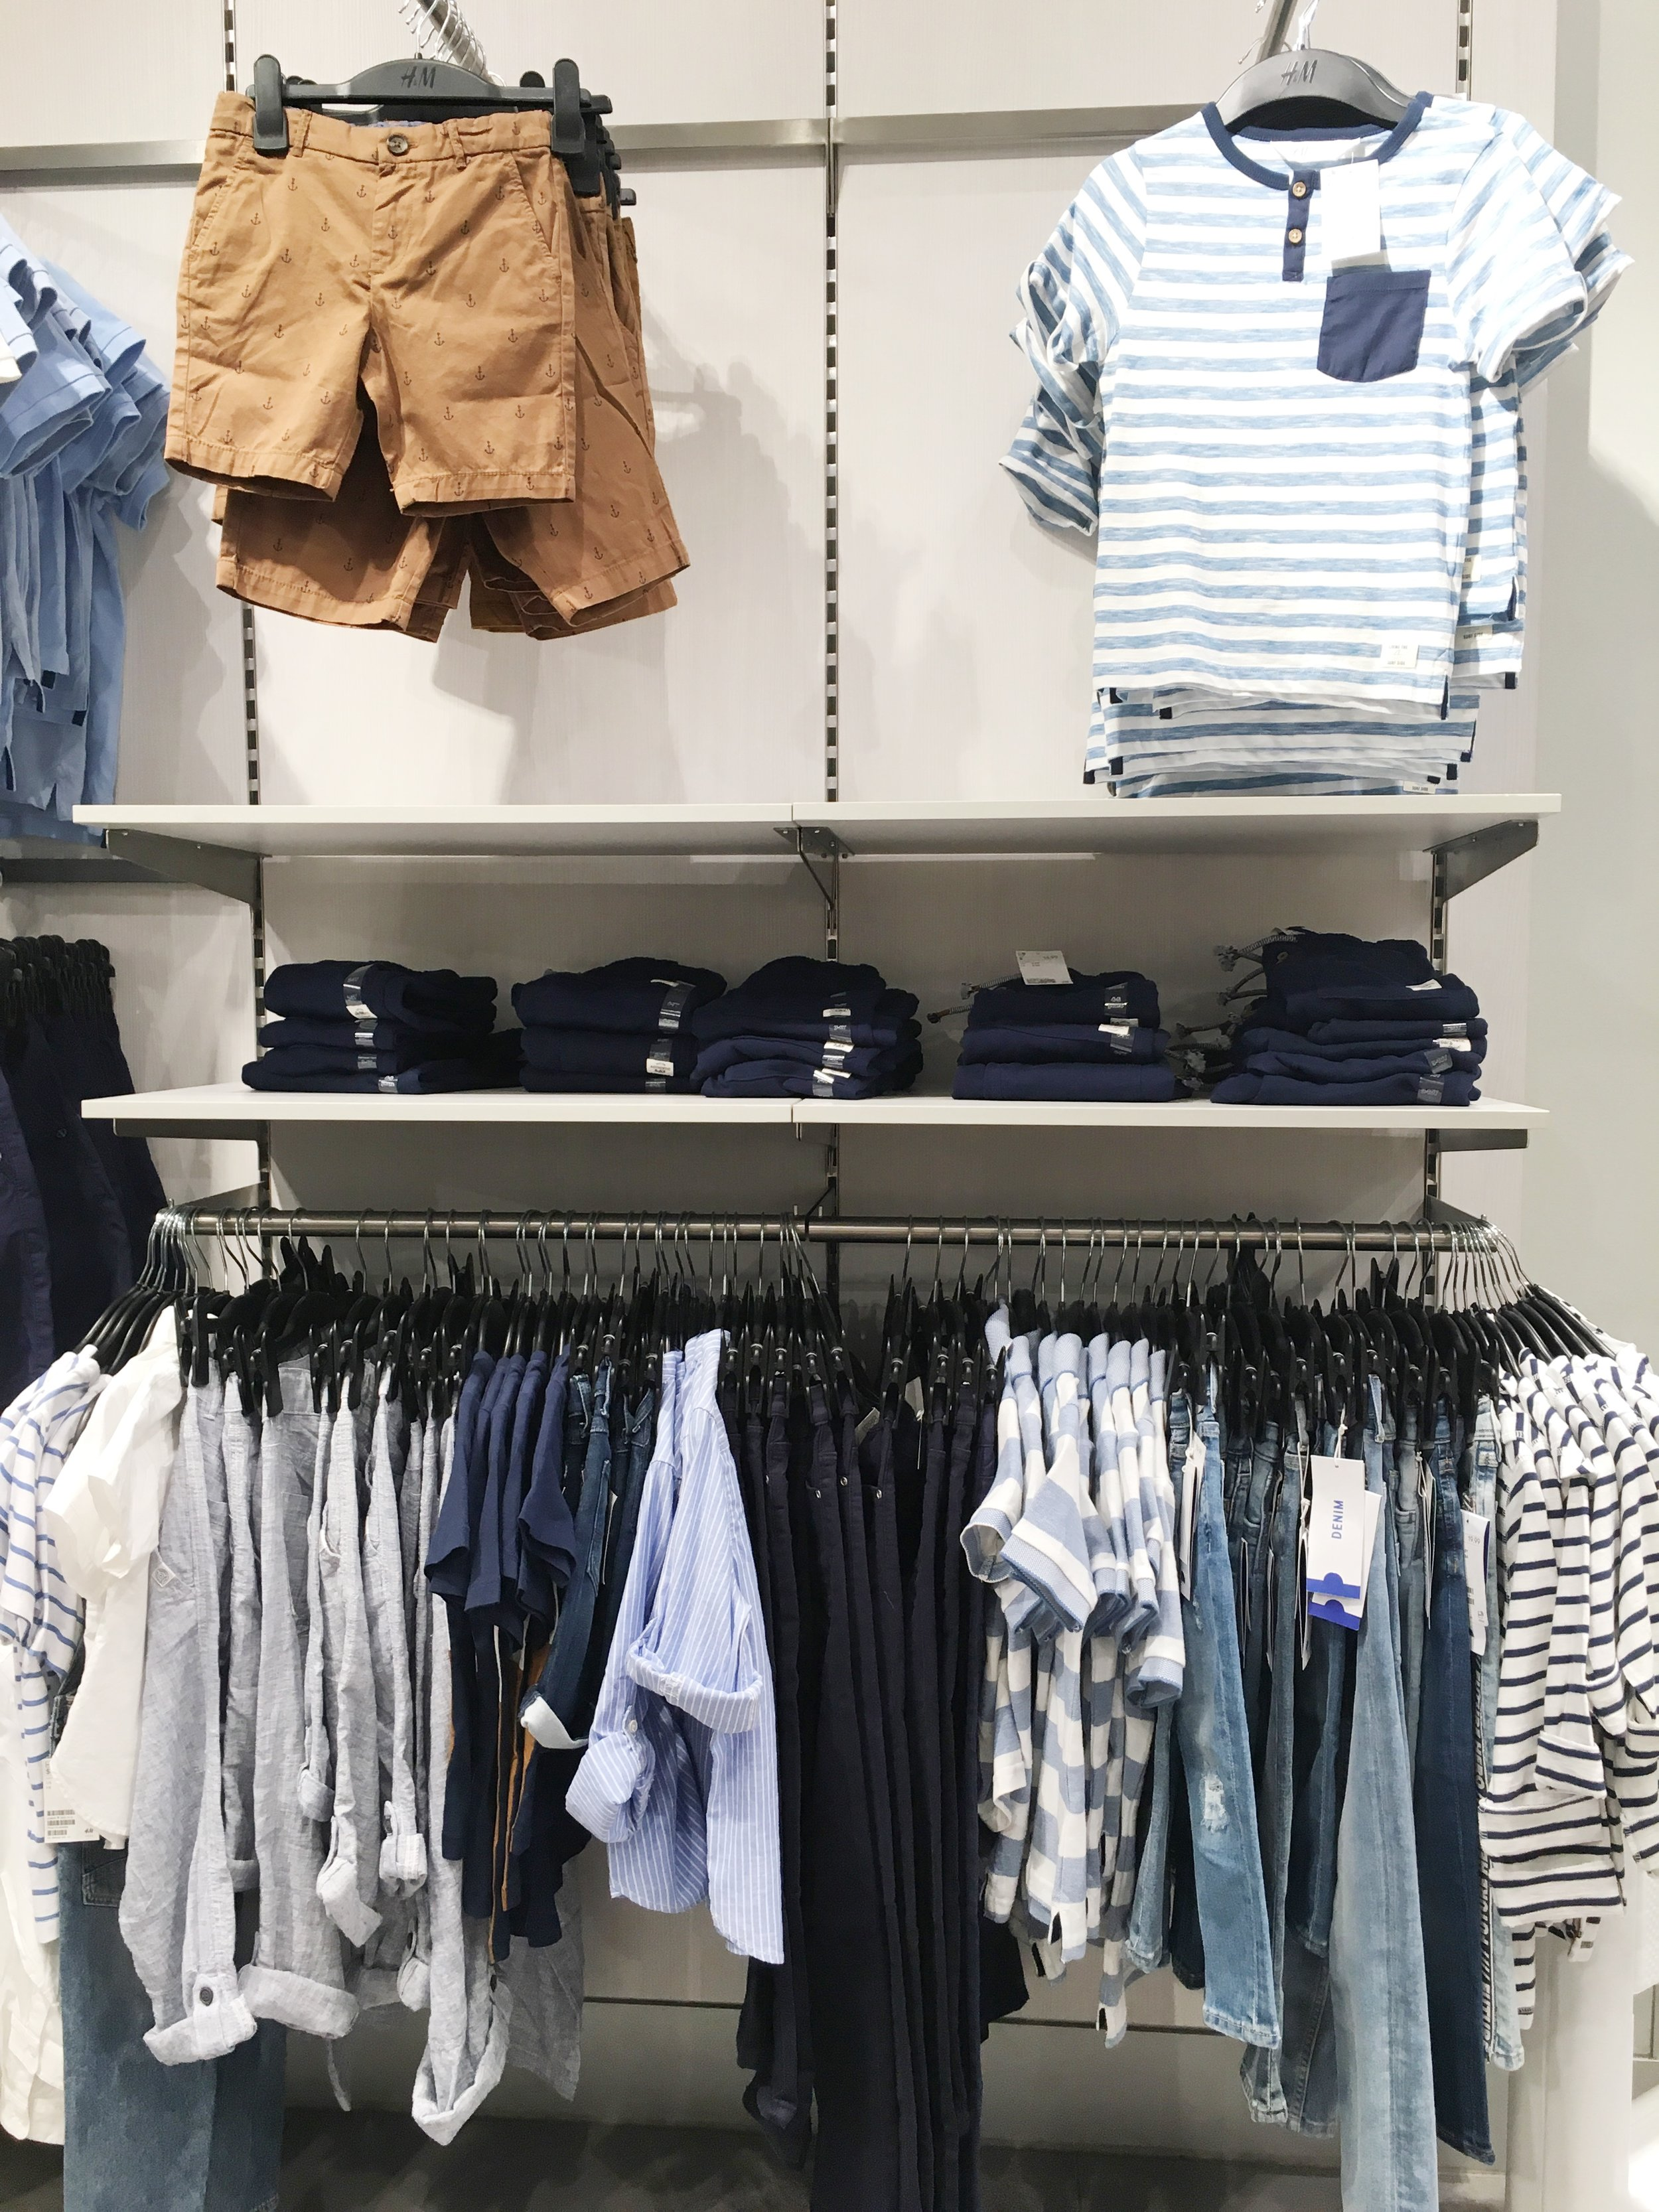 Color Block for Boys: shades of blue, white, & tan color scheme